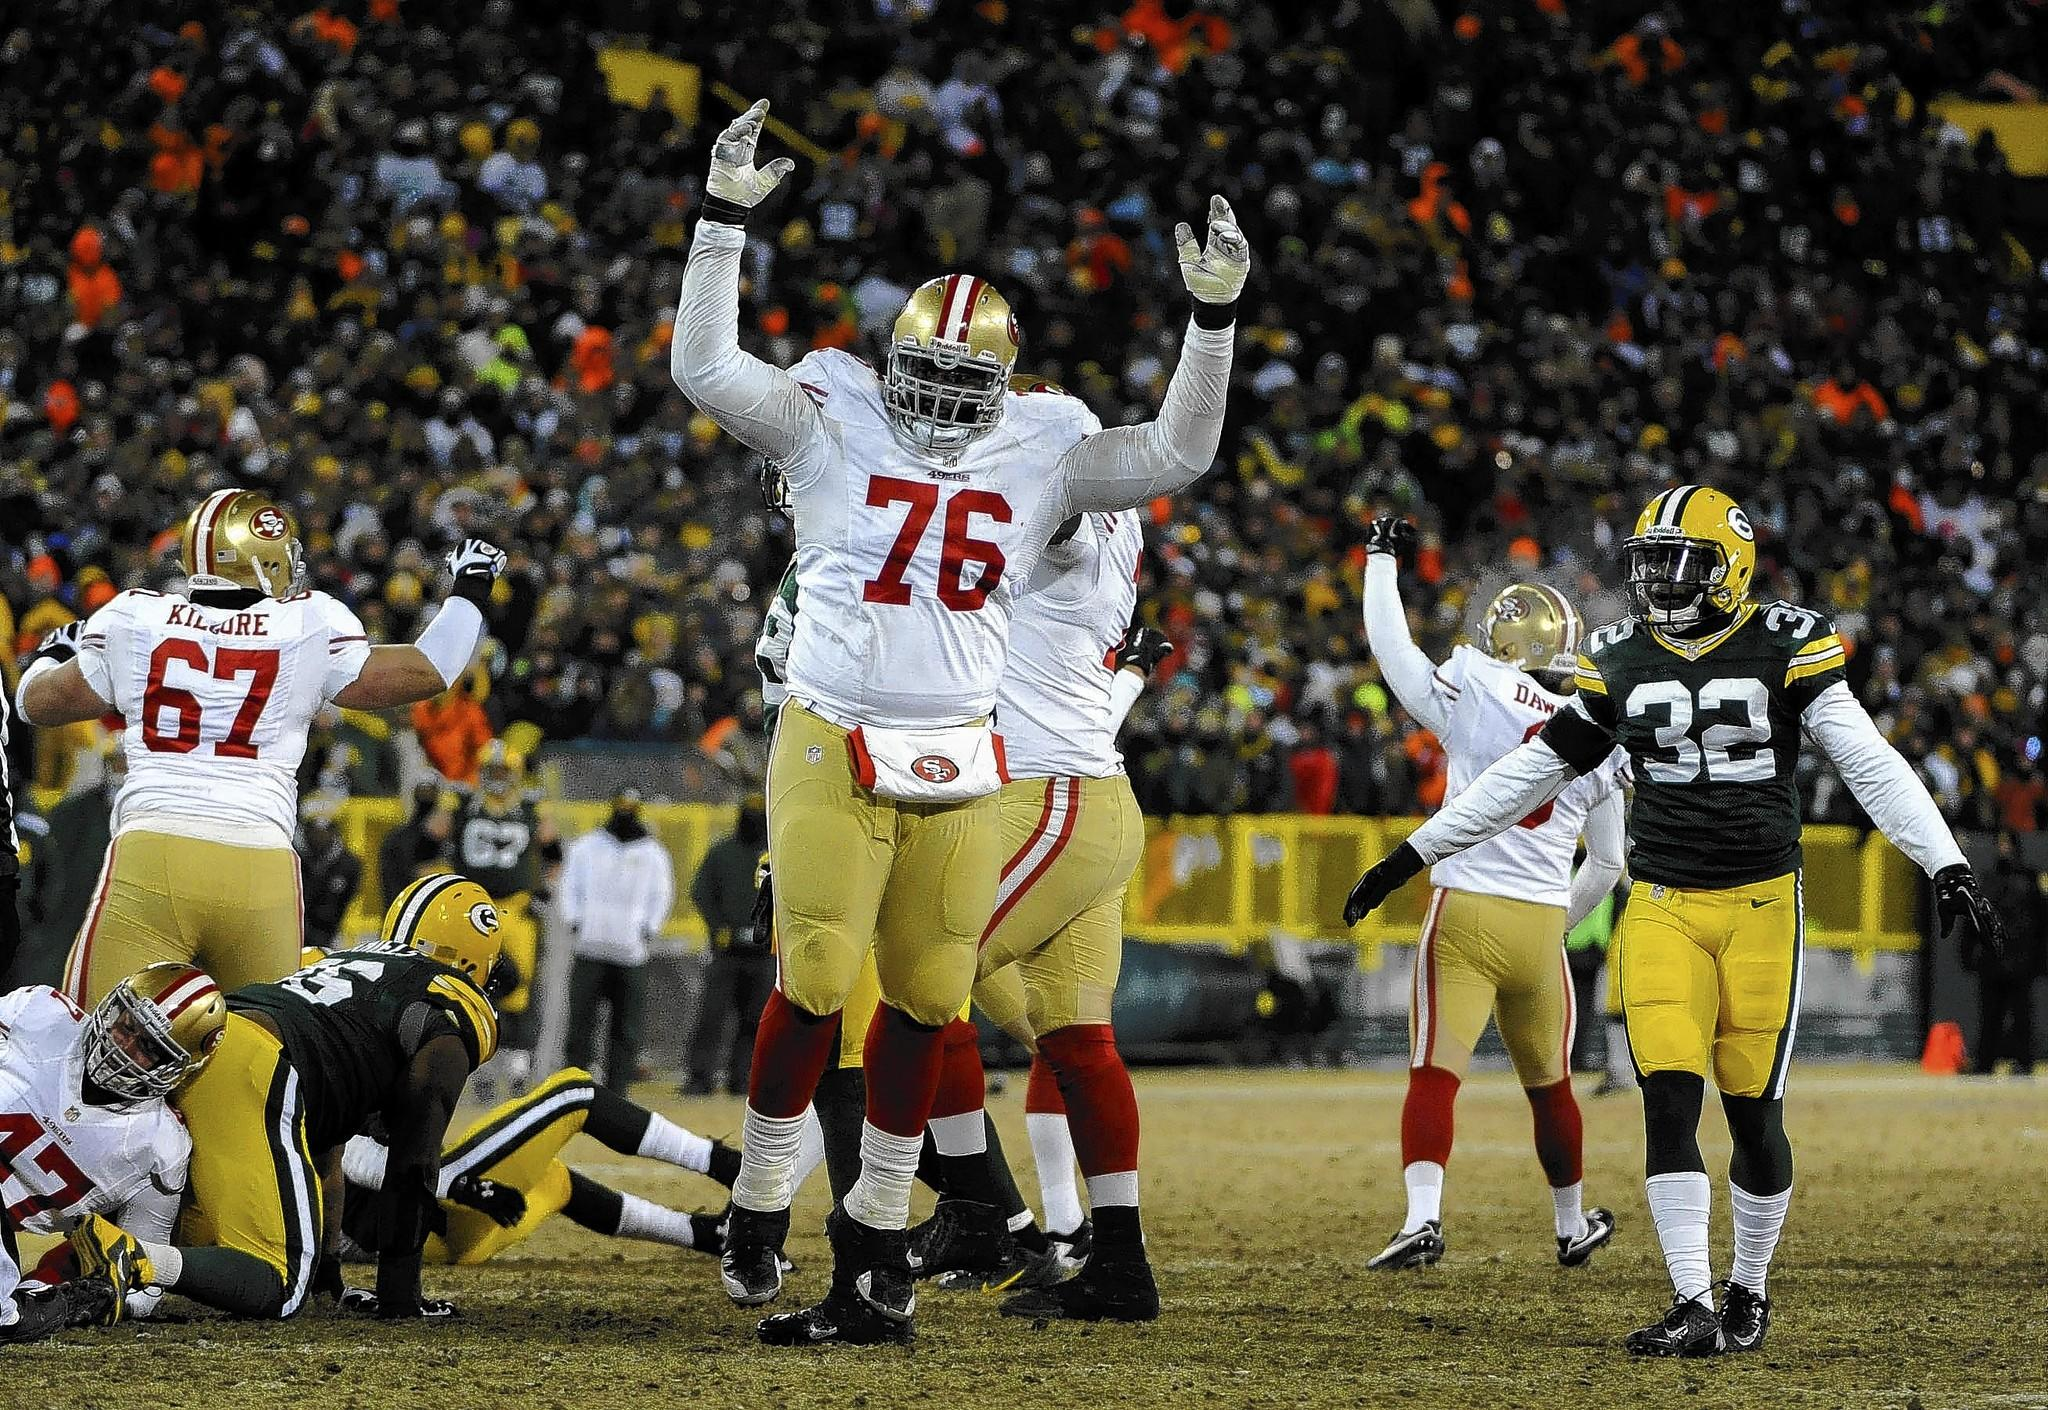 The San Francisco 49erscelebrate after beating the Green Bay Packers 23-20 on a late field goal by kicker Phil Dawson.